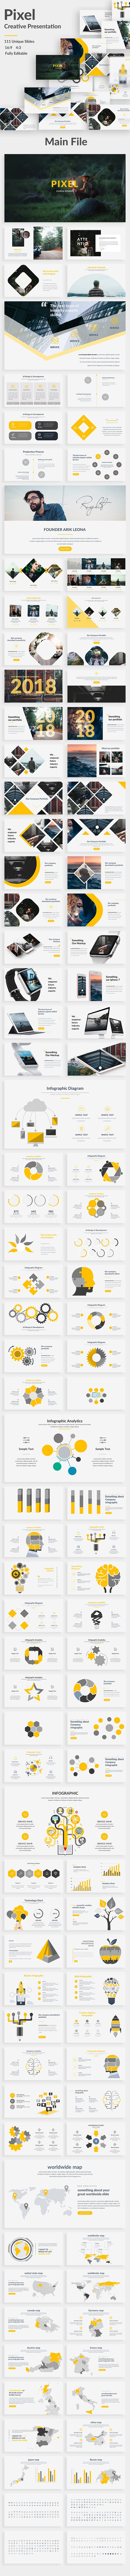 Pixel Creative Powerpoint Template